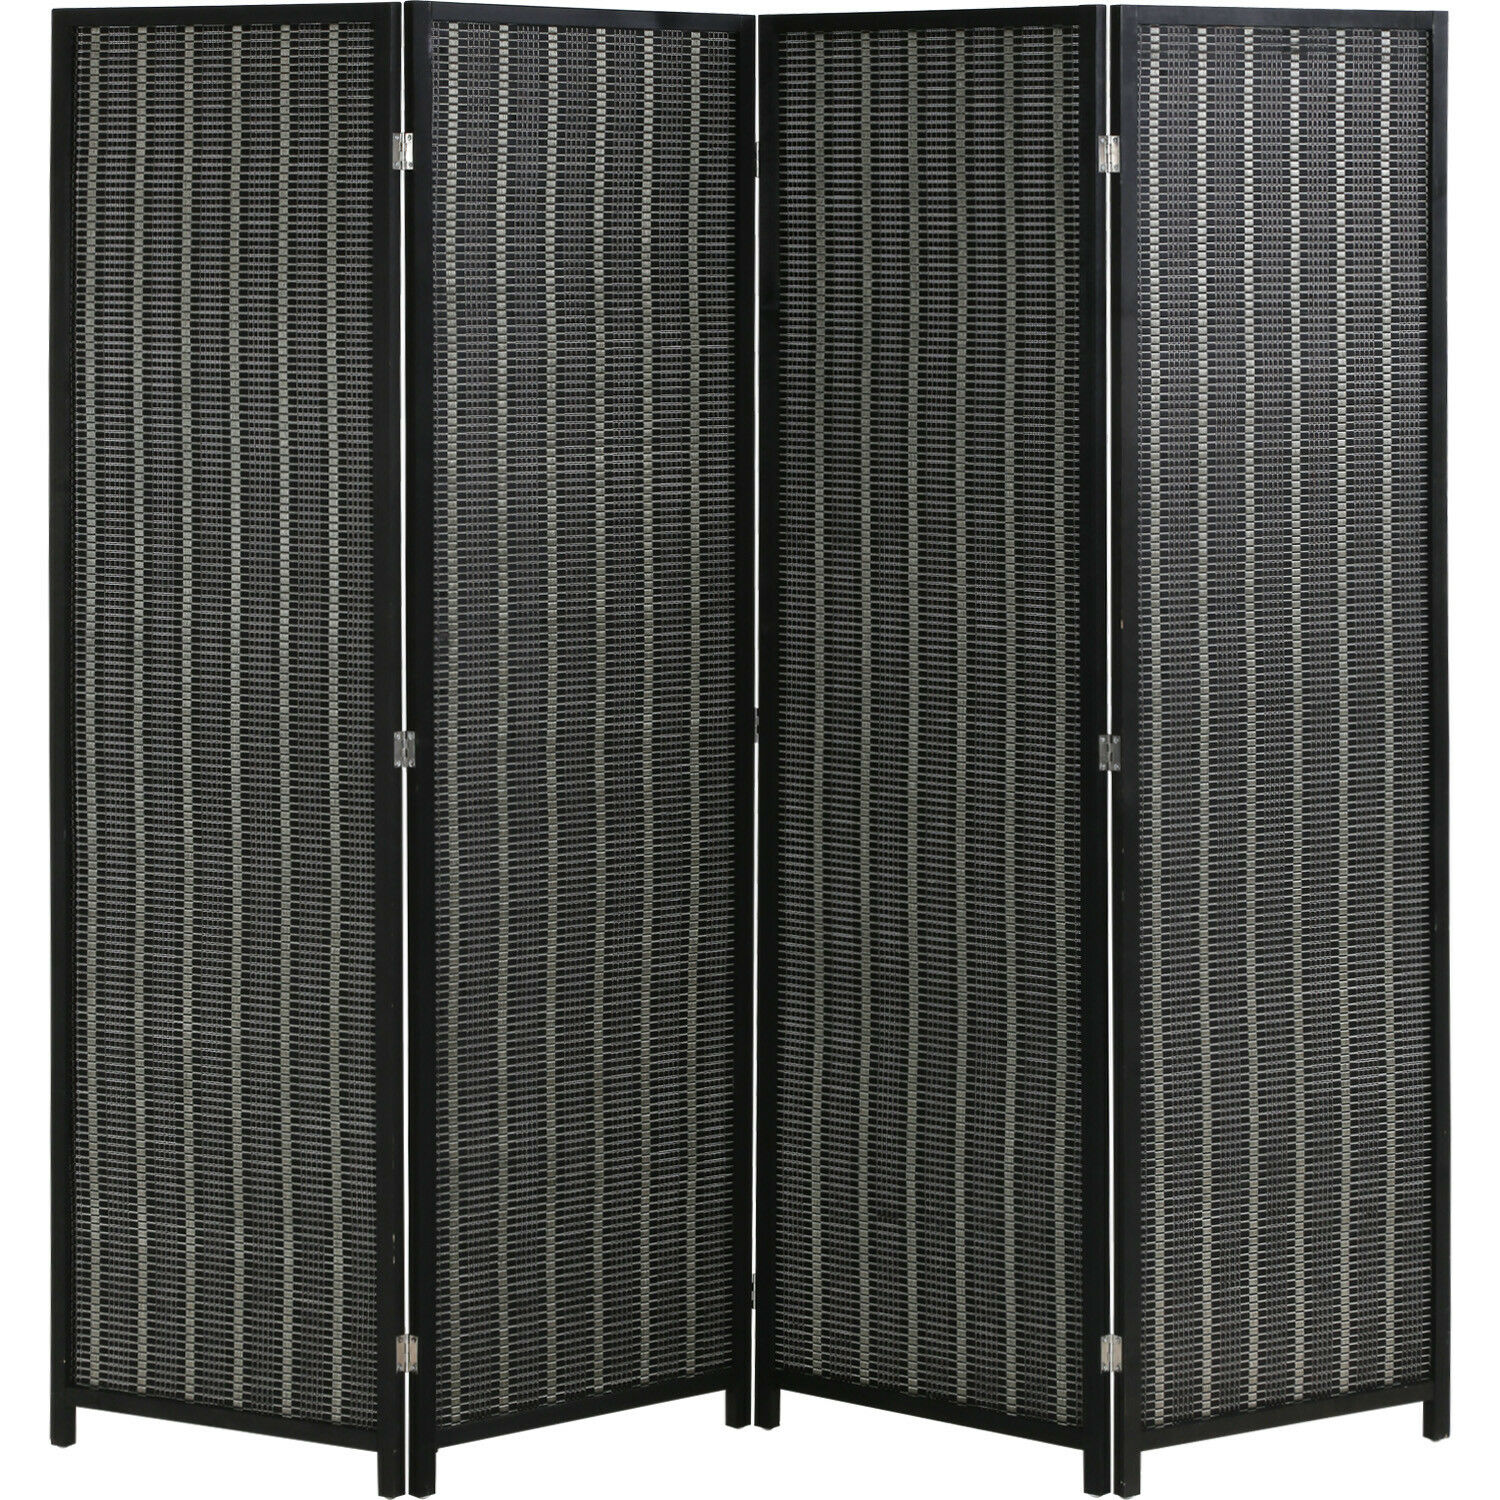 bamboo room divider folding privacy screen 4